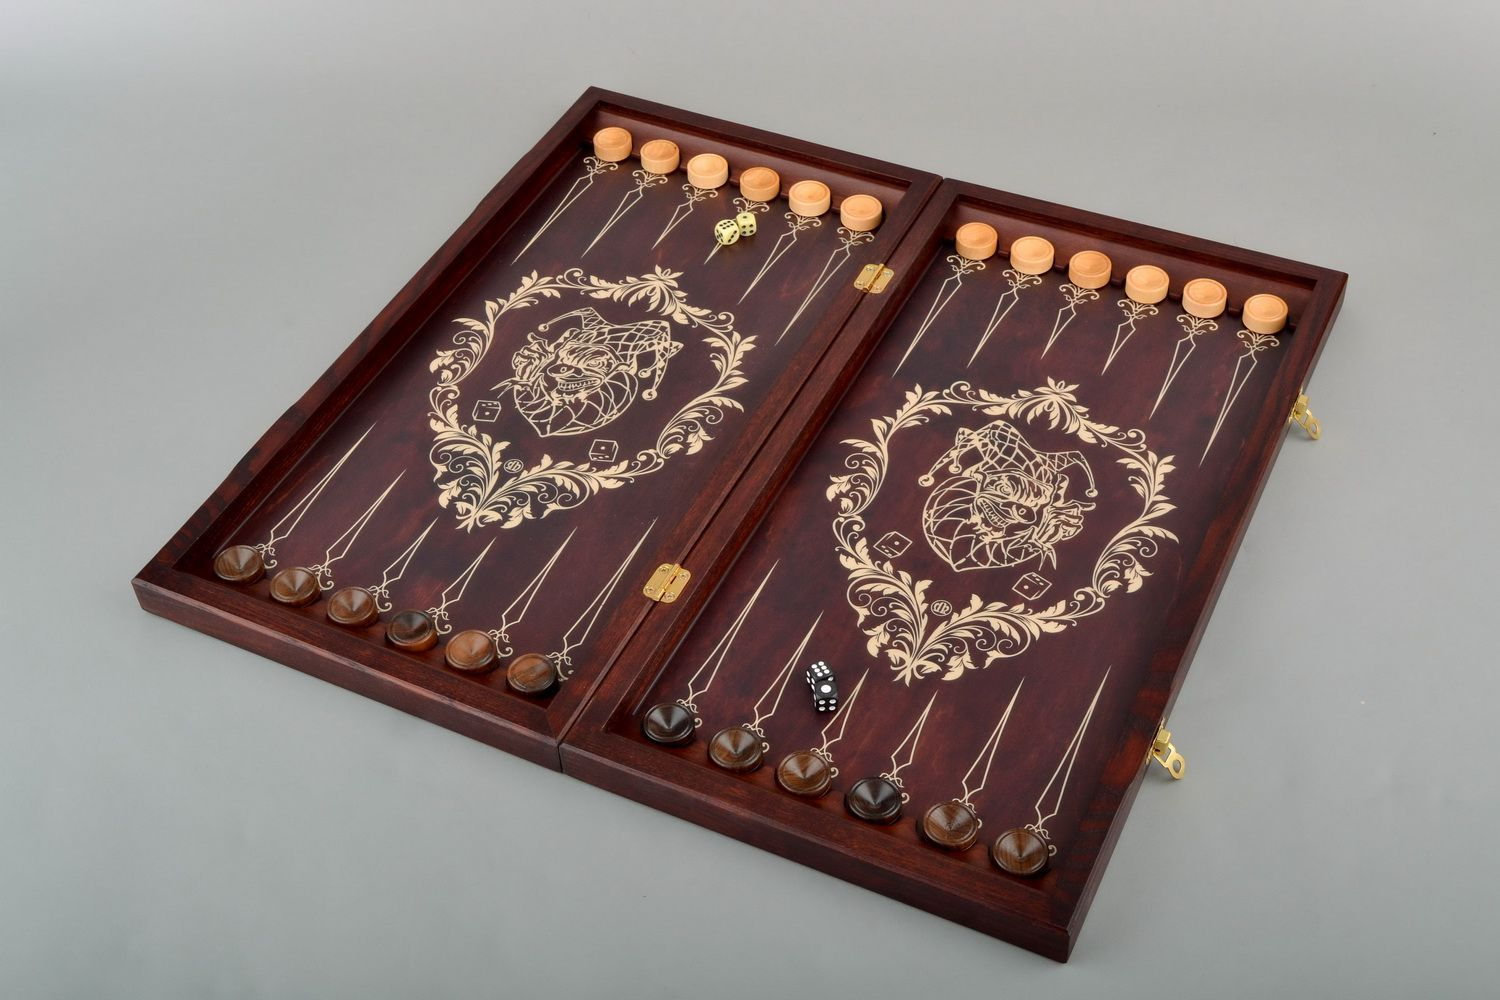 Wooden backgammon set photo 3